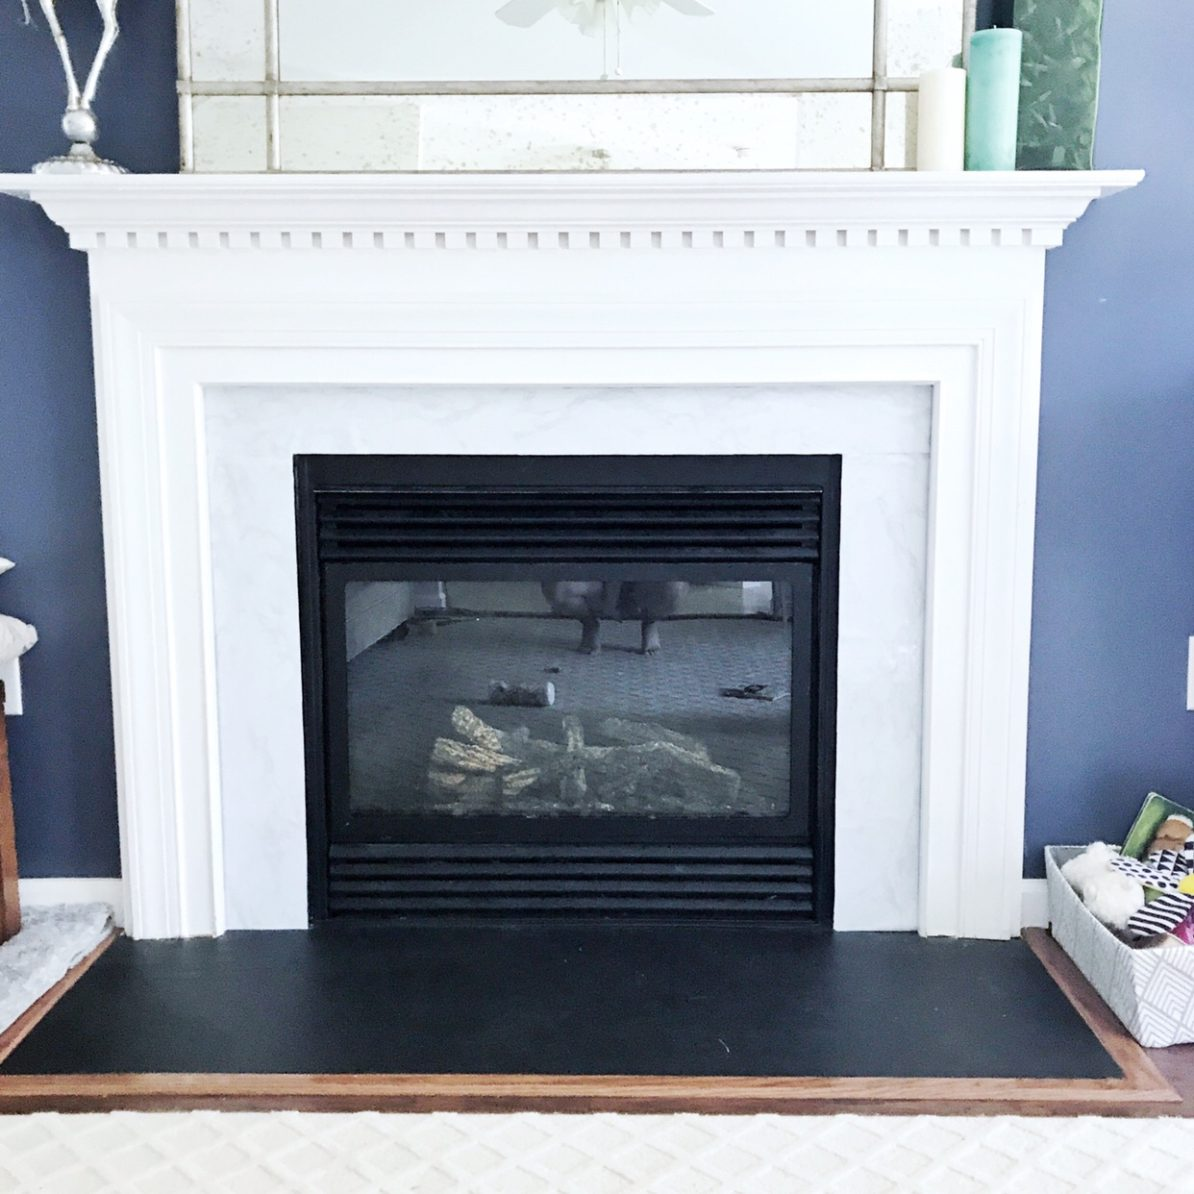 Get the look with this DIY Faux Marble Fireplace Hack from StampinFool.com